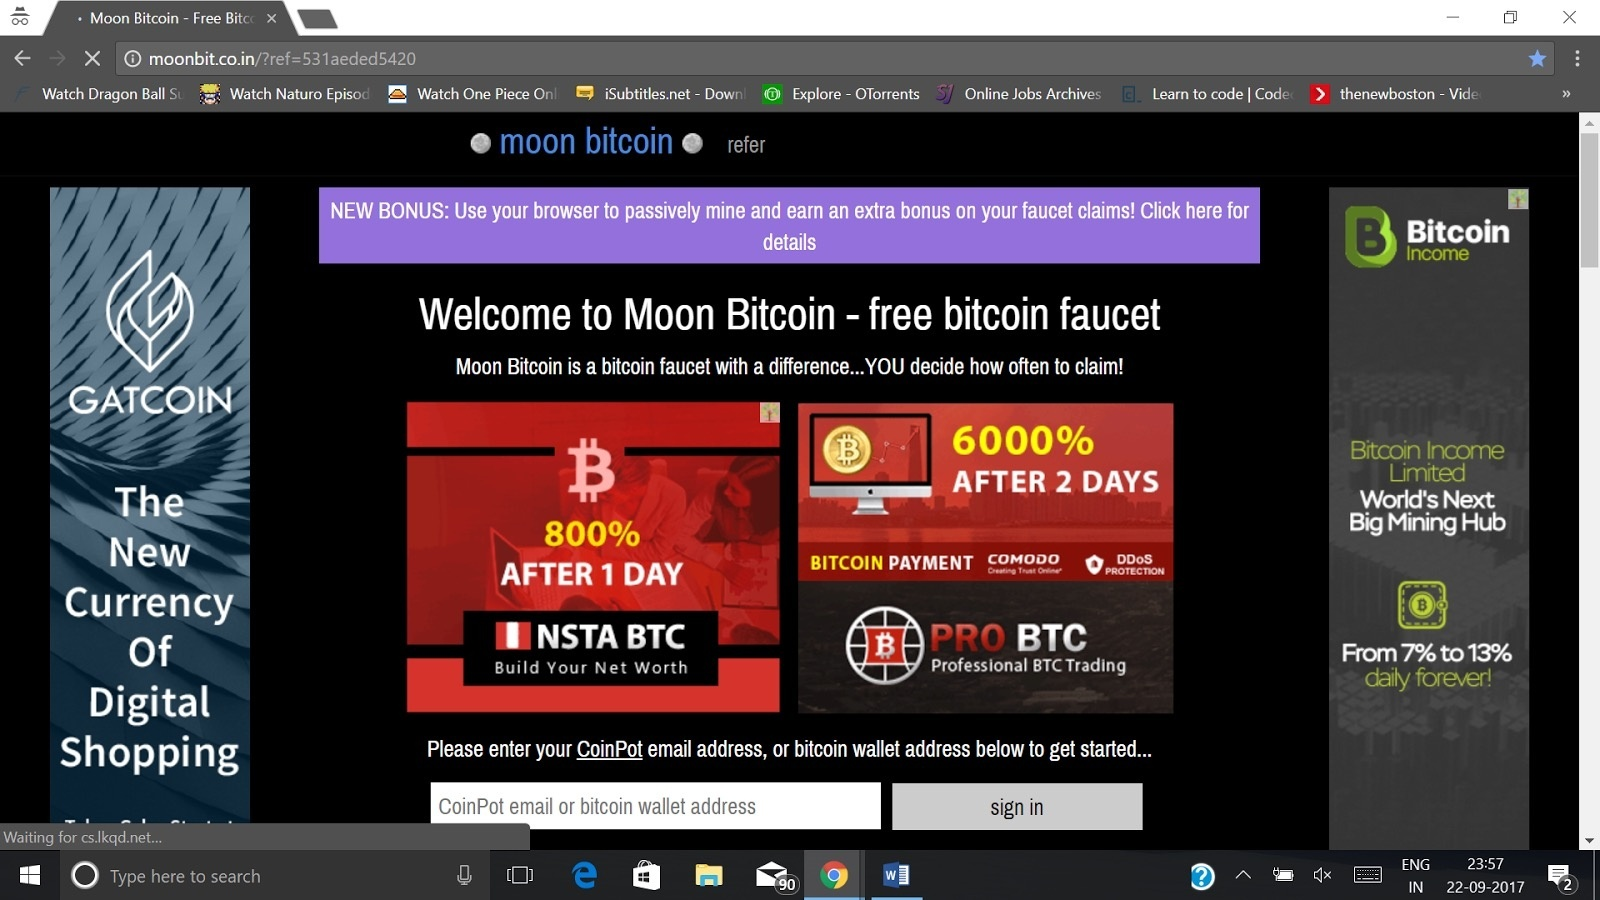 How to earn bitcoins in India for free - Quora